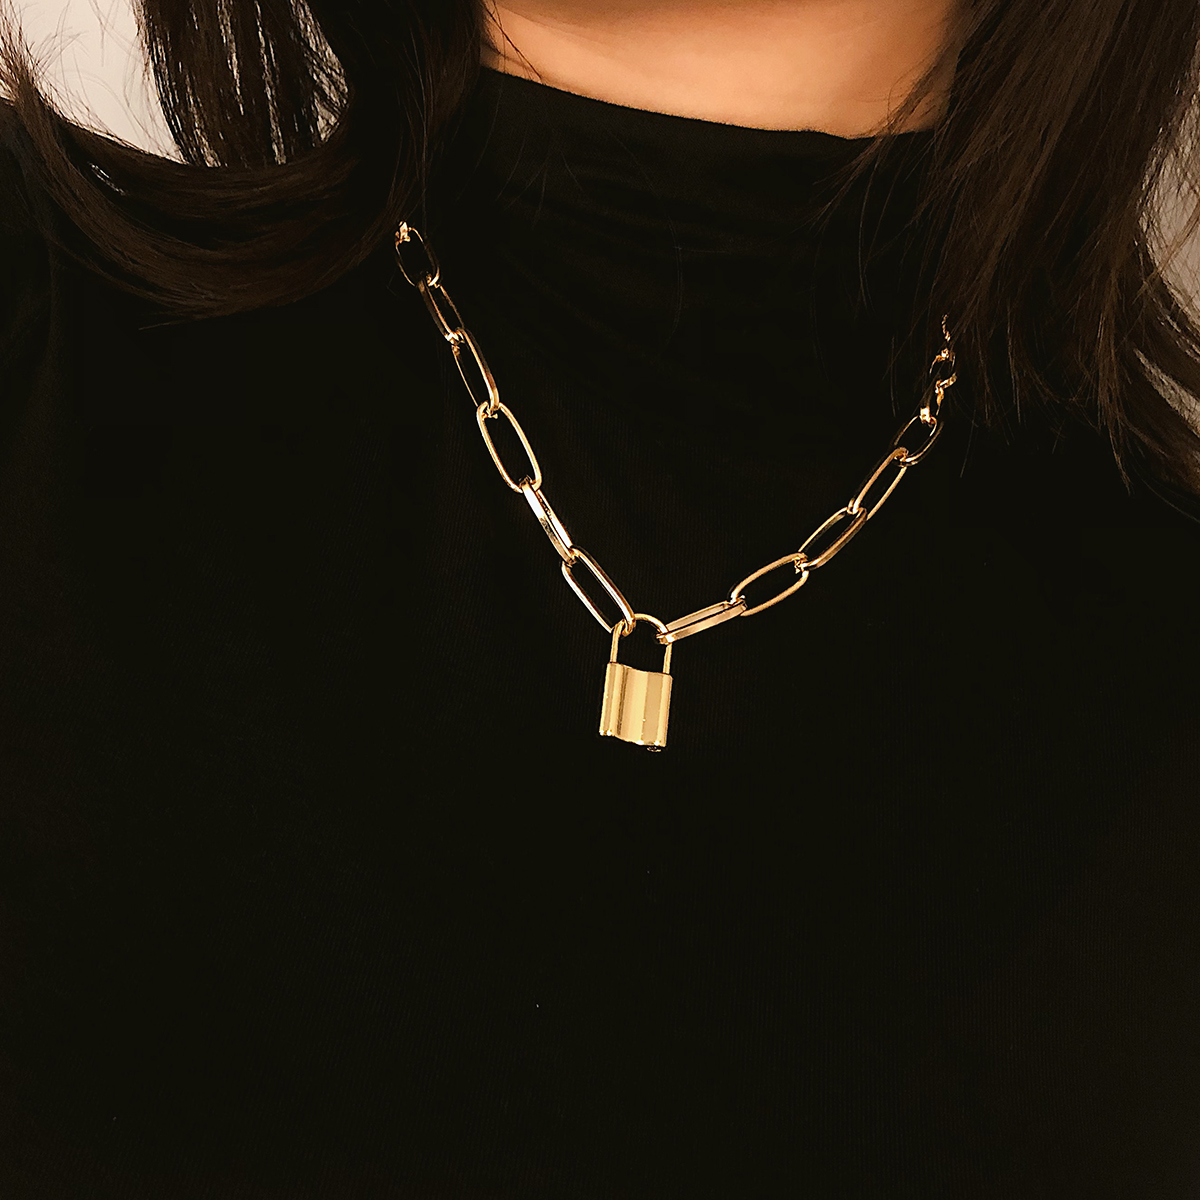 Rock Choker Lock Necklace Layered Chain On The Neck With Lock Punk Jewelry Mujer Key Padlock Pendant Necklace For Women Gift(China)